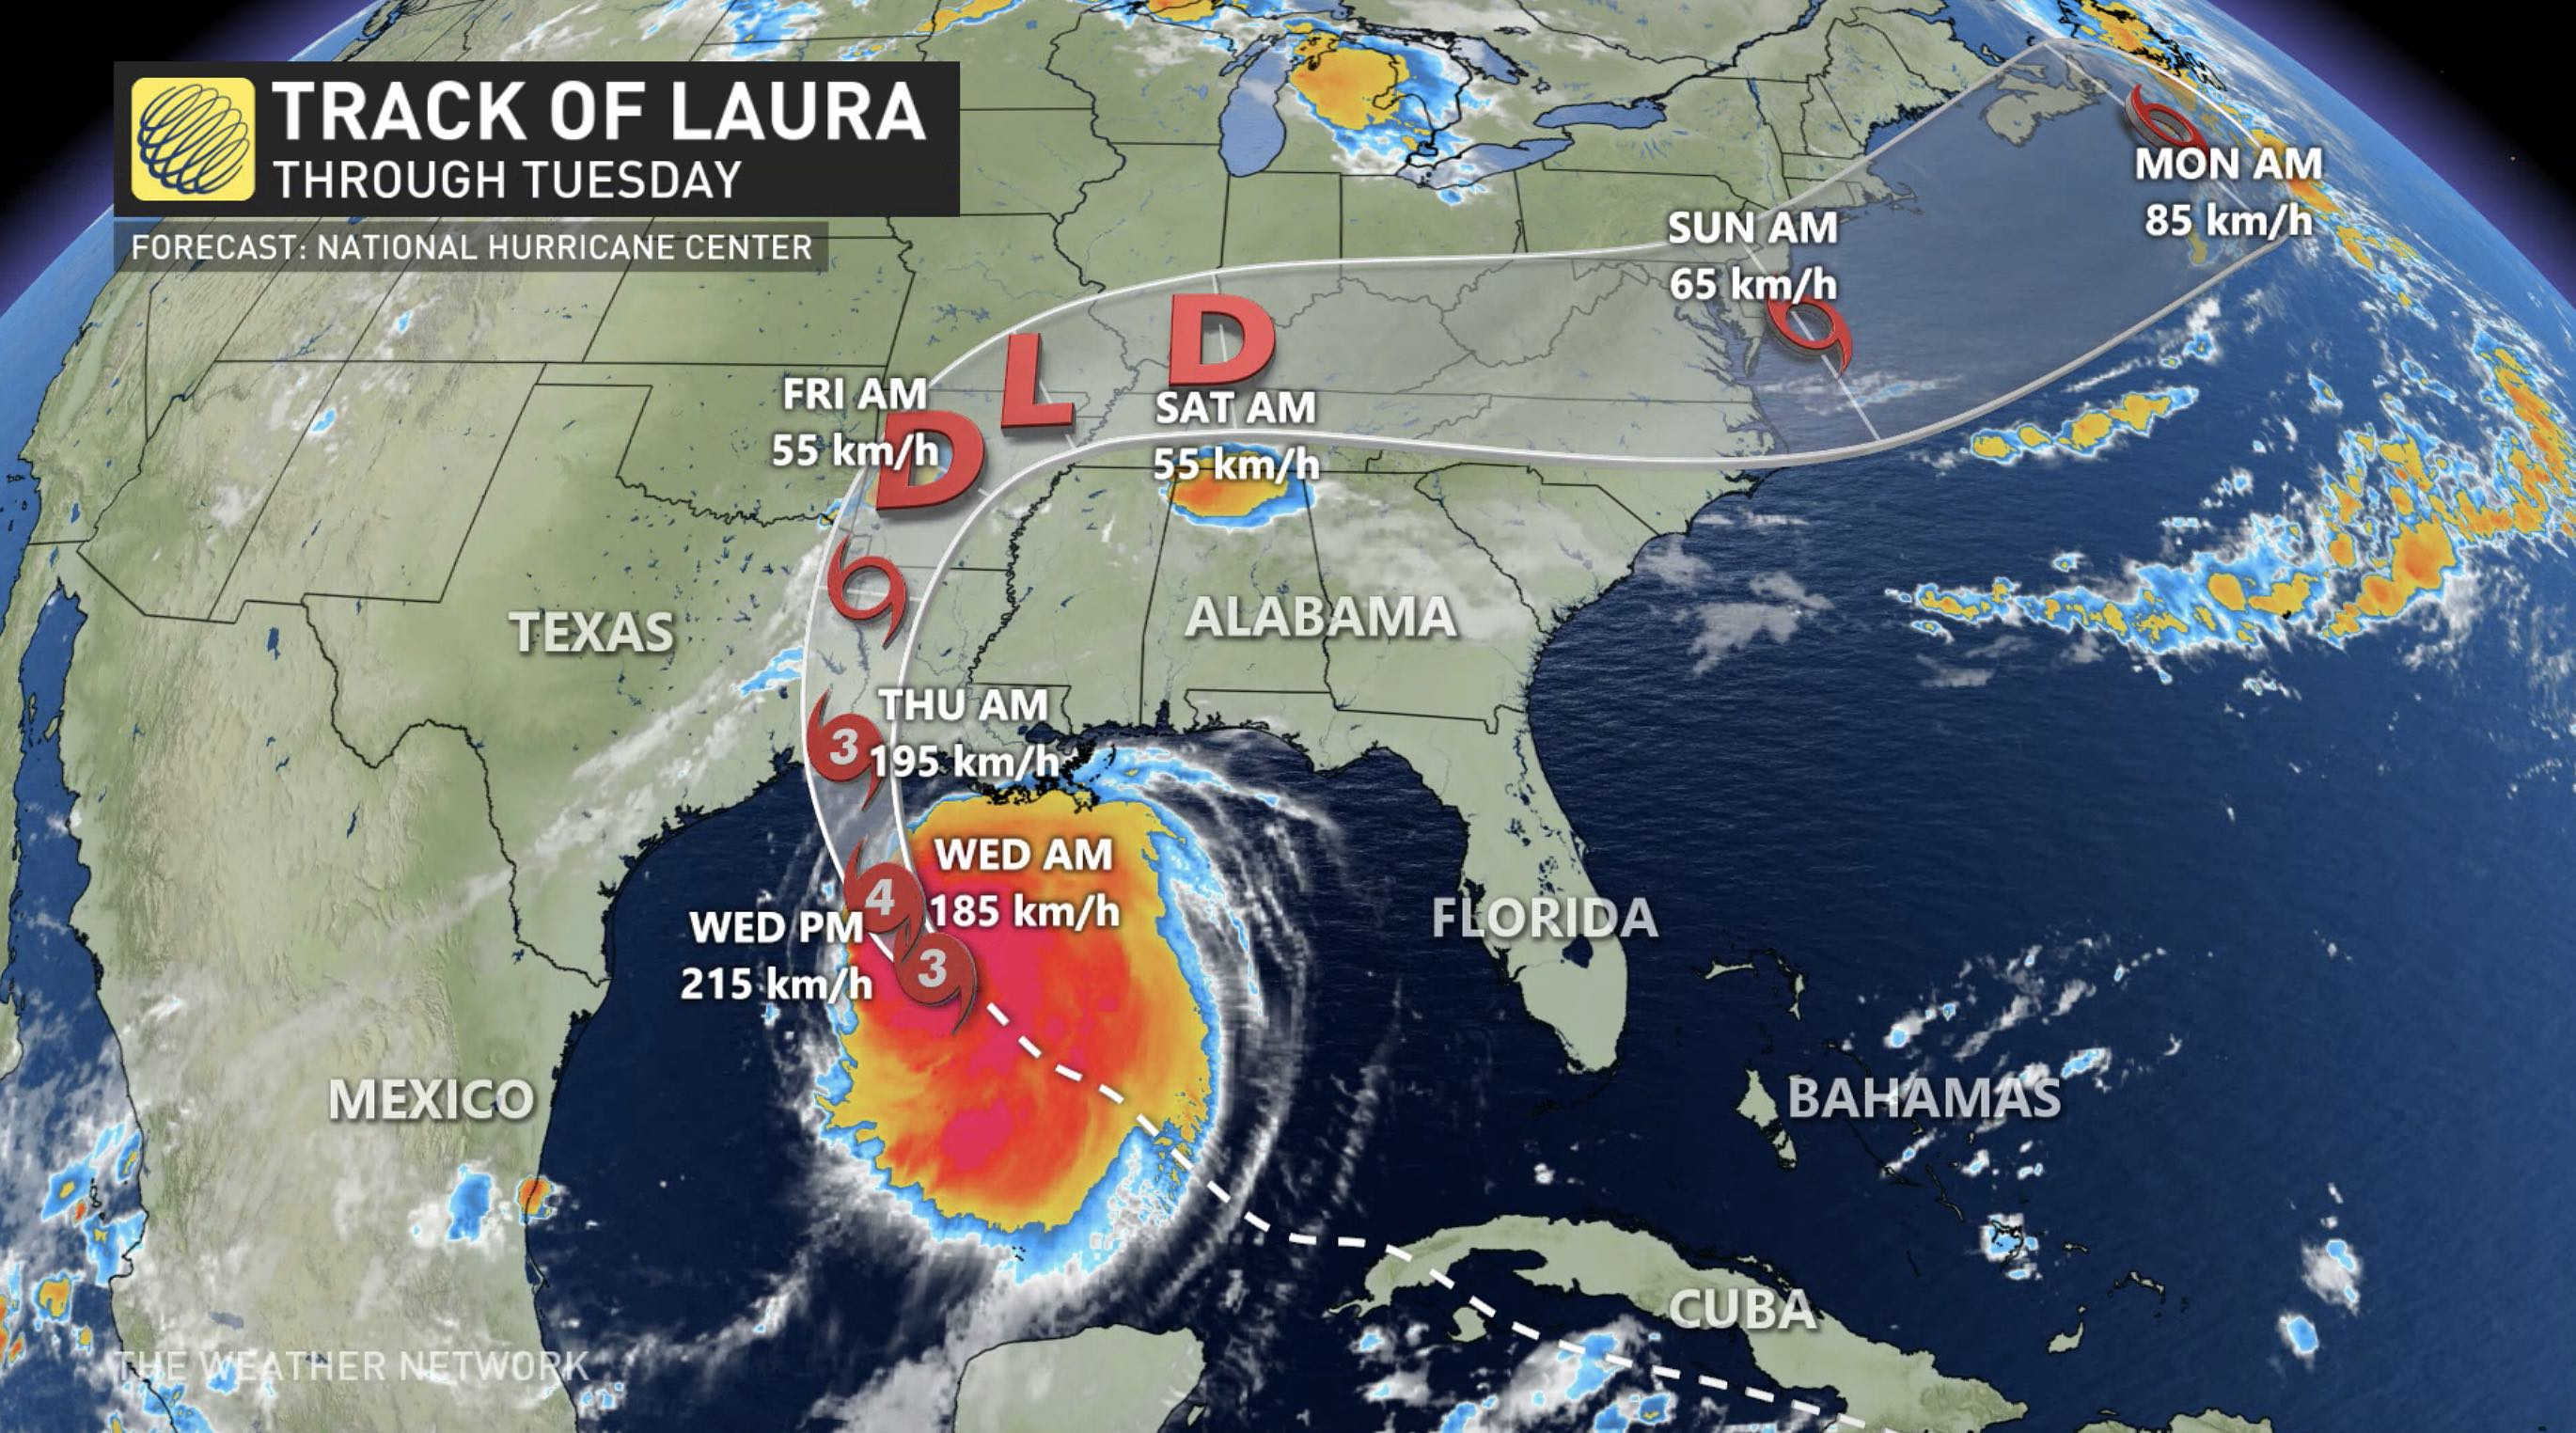 TROPICS: Laura becomes major hurricane ahead of 'potentially catastrophic' US landfall